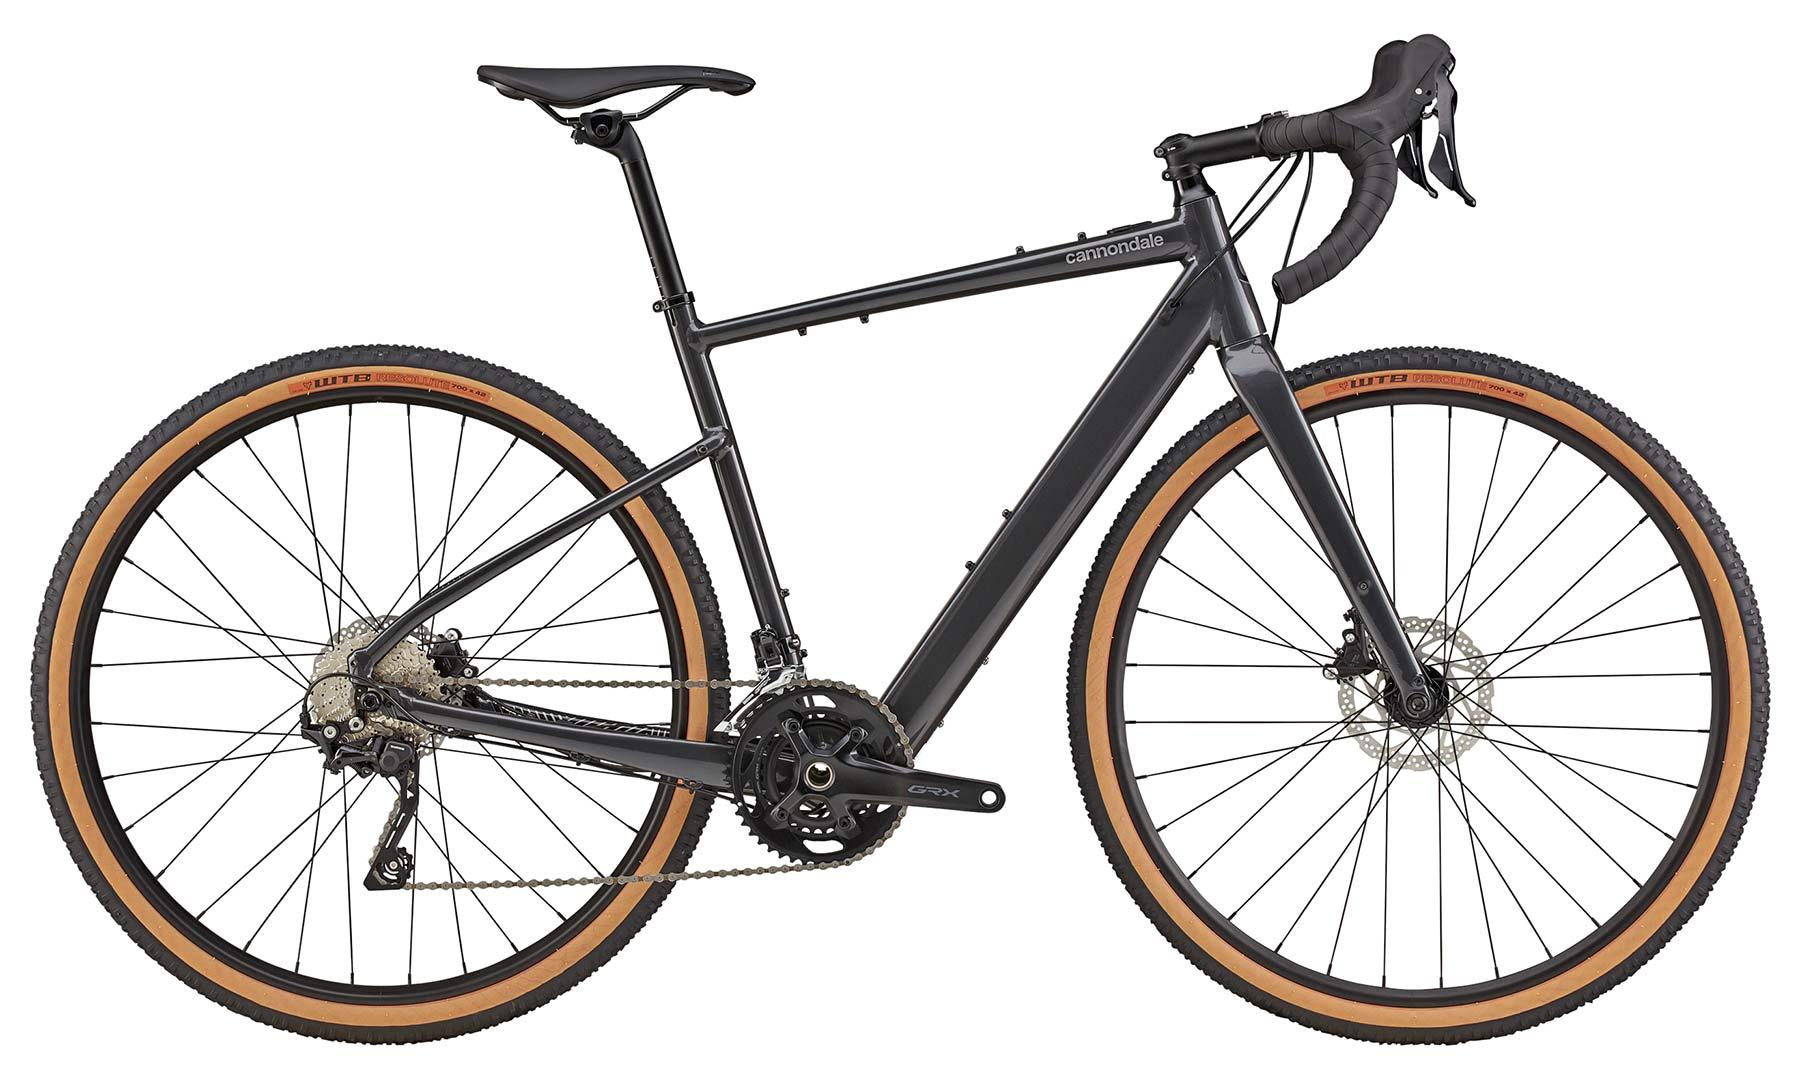 Cannondale Topstone Neo SL lightweight affordable alloy gravel e-bike,2 complete